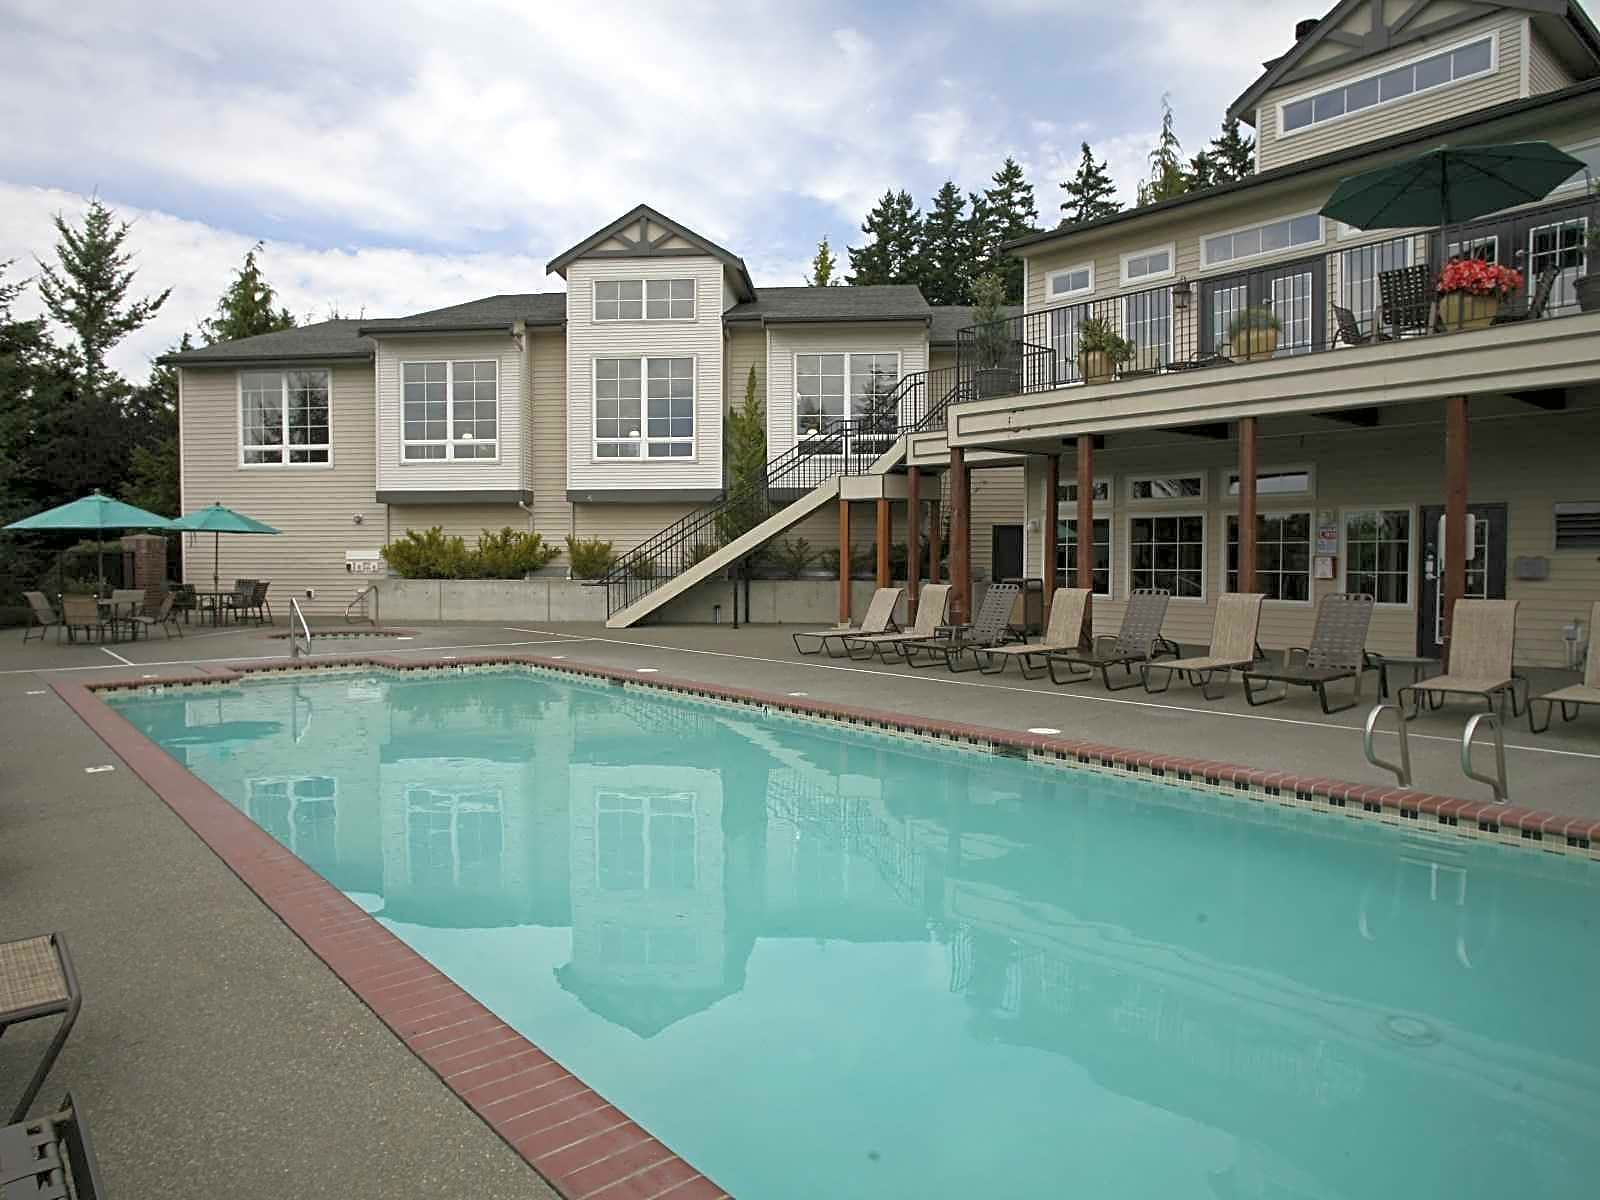 Lexington Heights Apartments - Renton, WA 98056